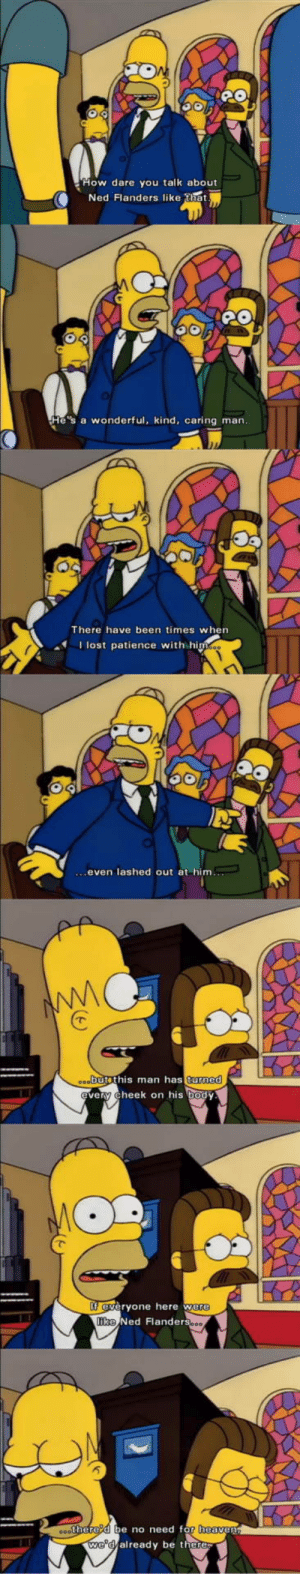 Ned is the real mvp: How dare you talk about  Ned Flanders like that  He's a wonderful, kind, caring man  There have been times when  Ilost patience with hi  even lashed out at him  butethis man has turne  very cheek on his body  everyone here we  e Ned Flanders  there'd be no need for heavenn  we'd already be there Ned is the real mvp